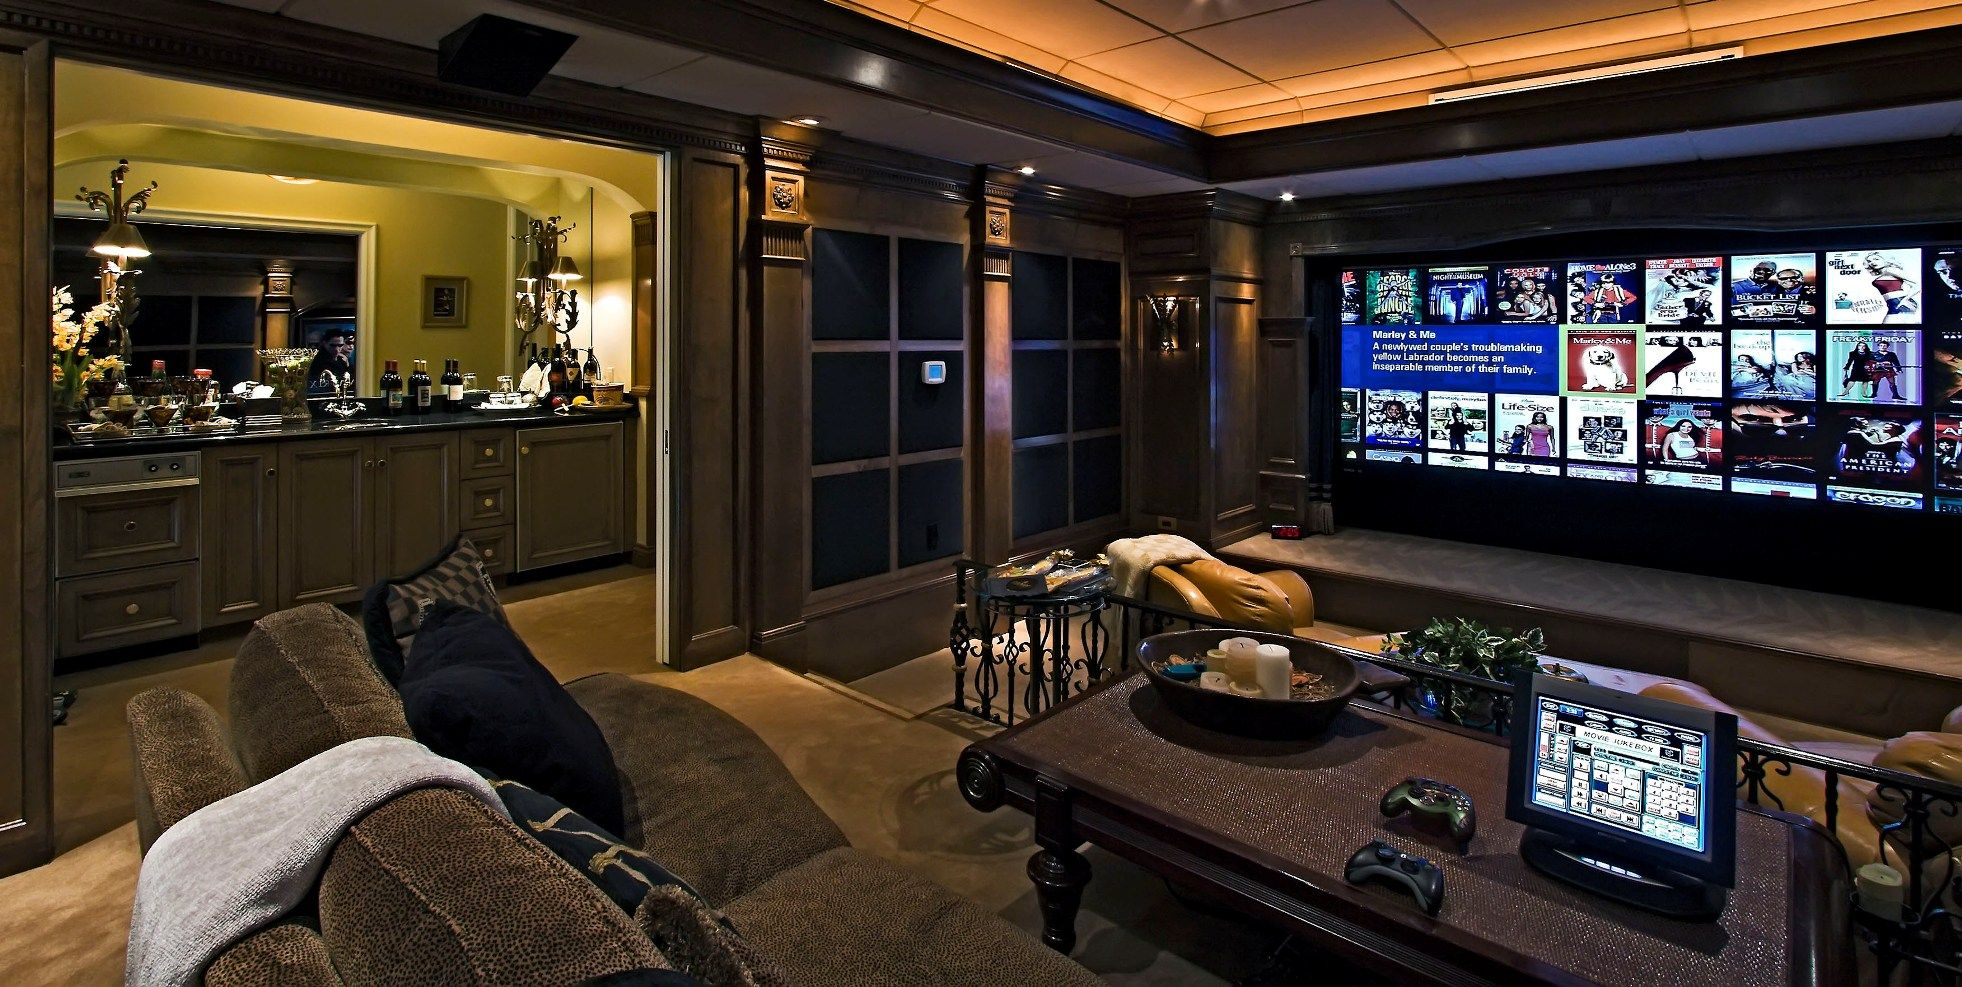 home decorating ideas | home theater decor ideas, home theater